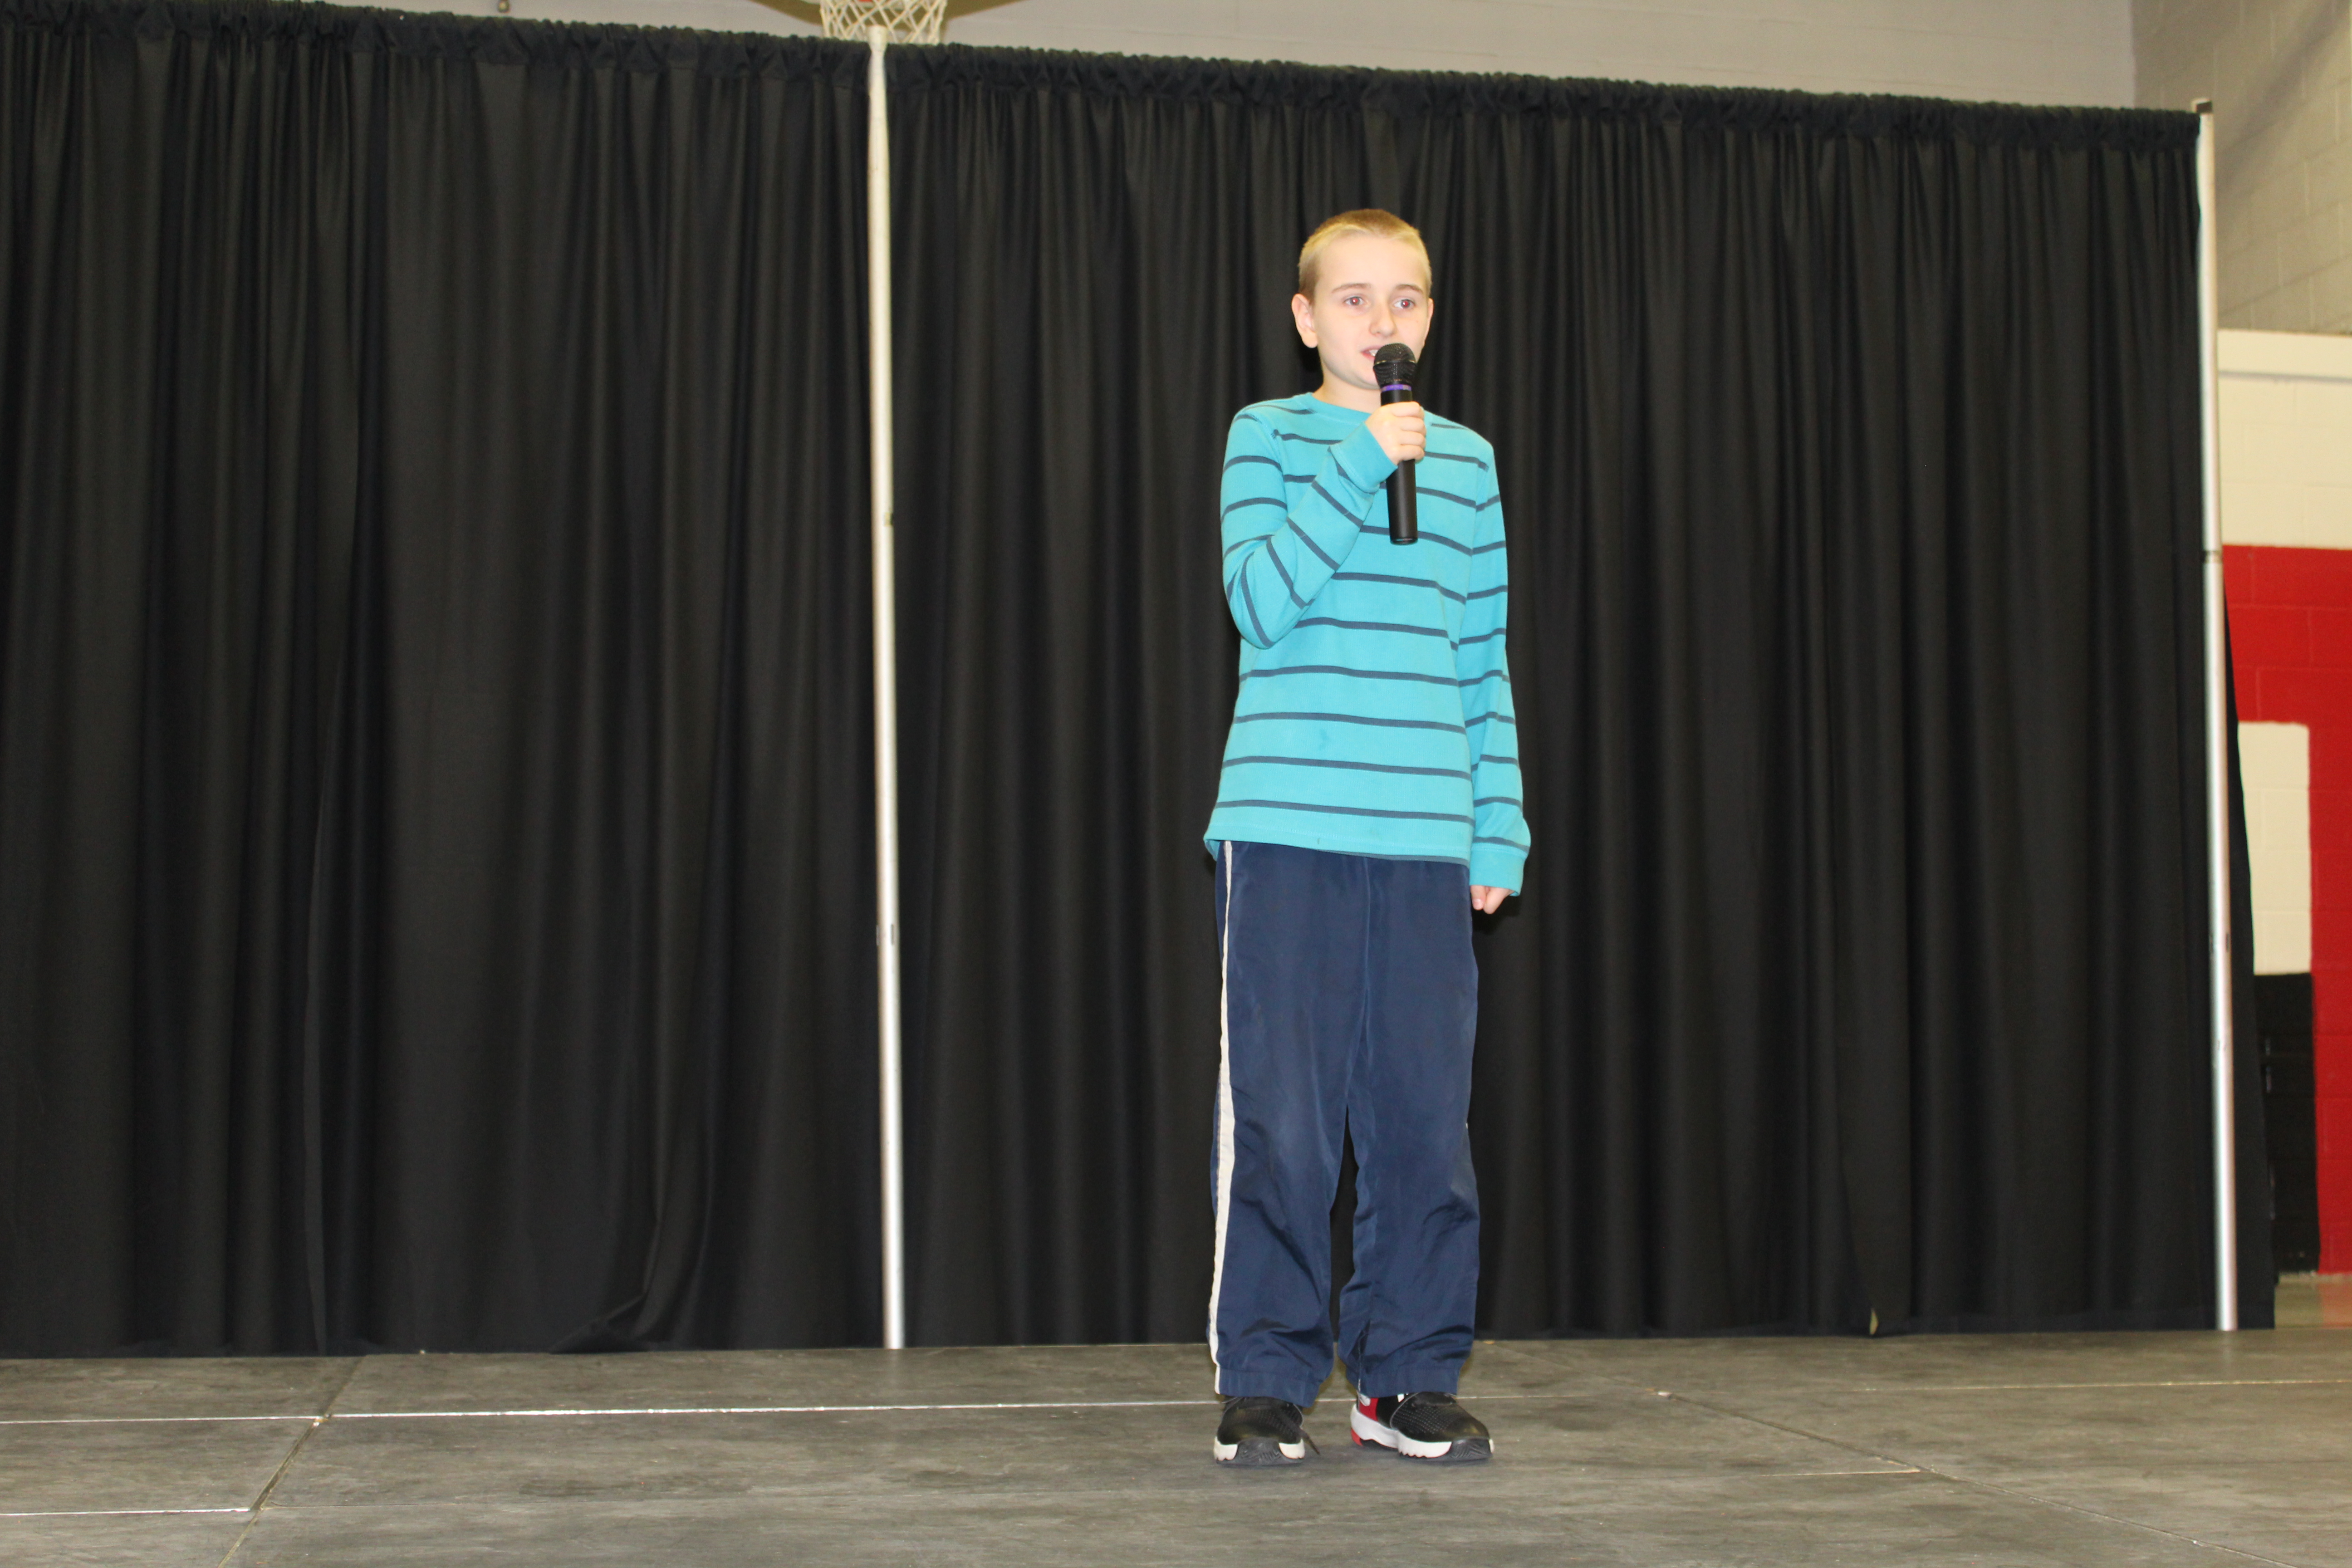 Student standing with microphone